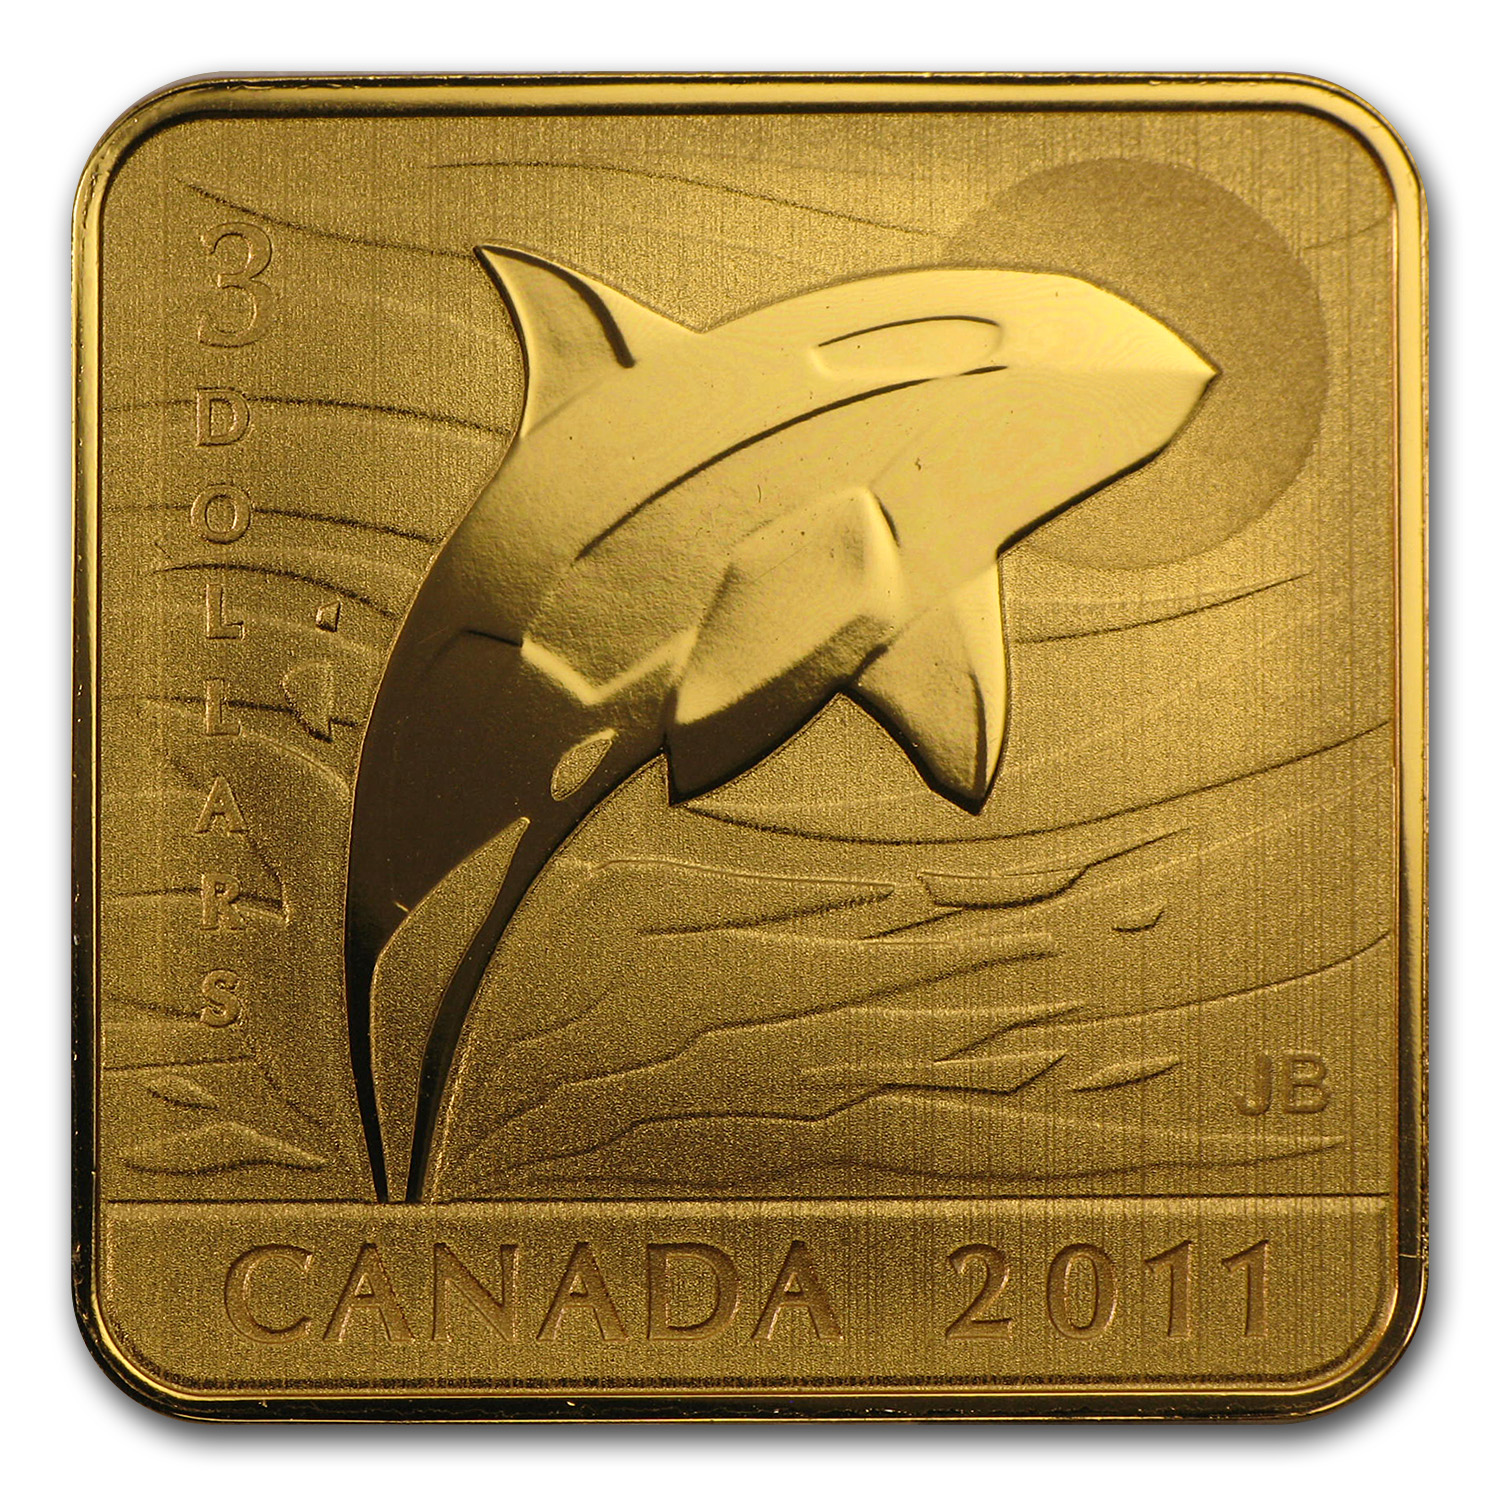 2011 Silver Gilded Canadian Wildlife Conservation - Orca Whale